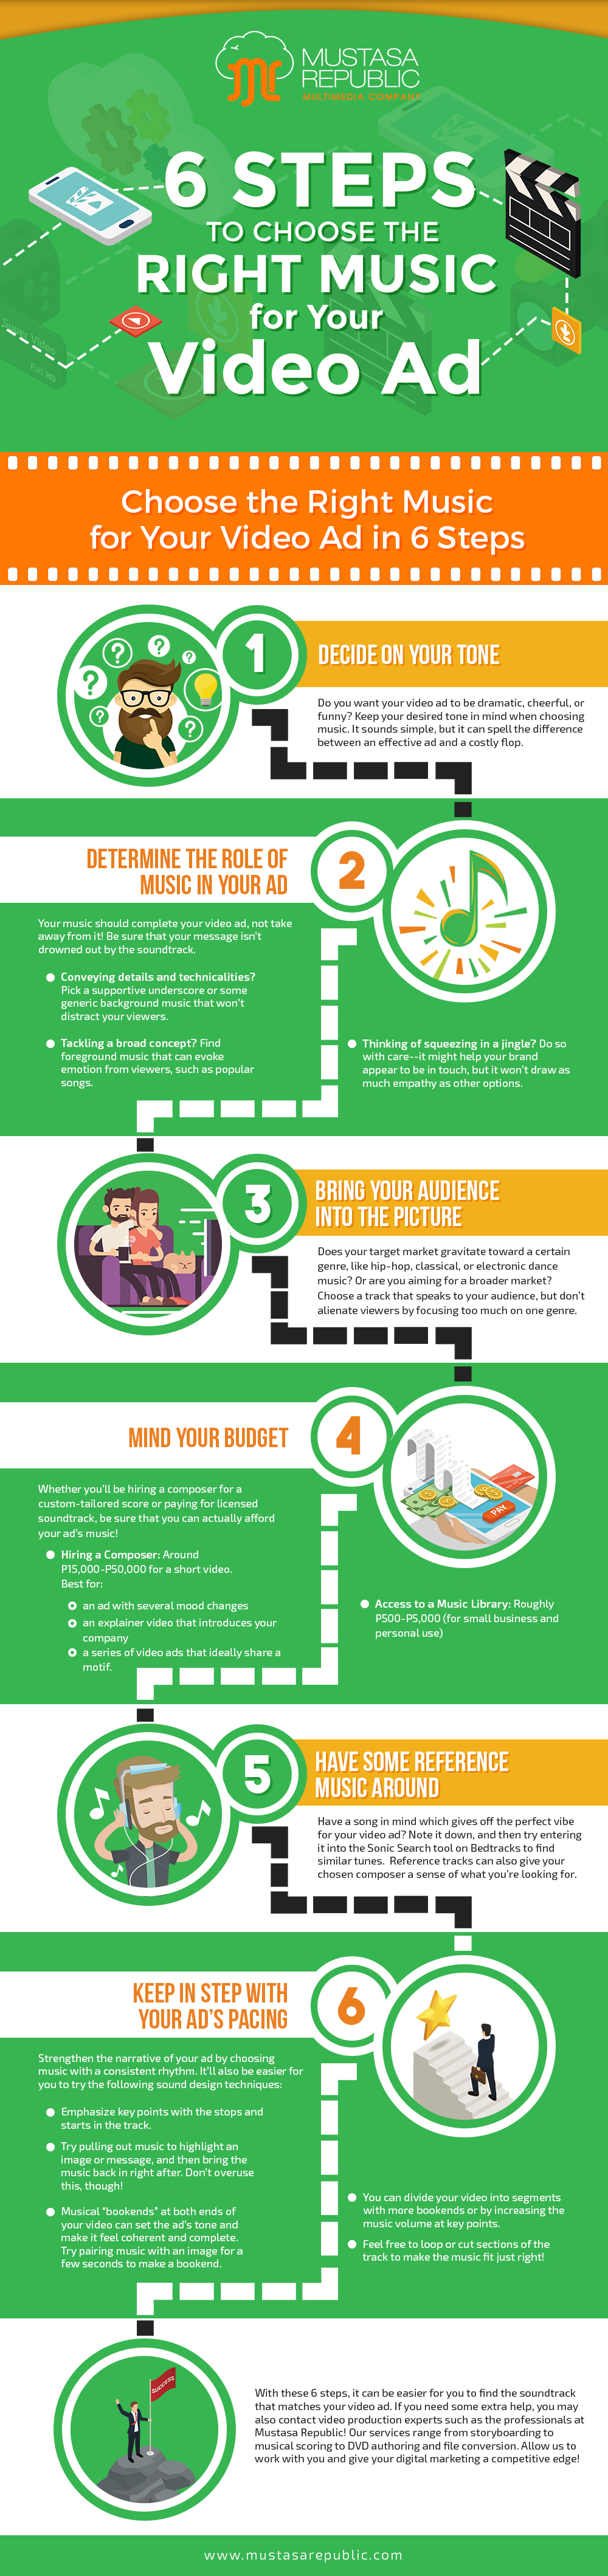 Choose the Right Music for Your Video Ad-Infographic